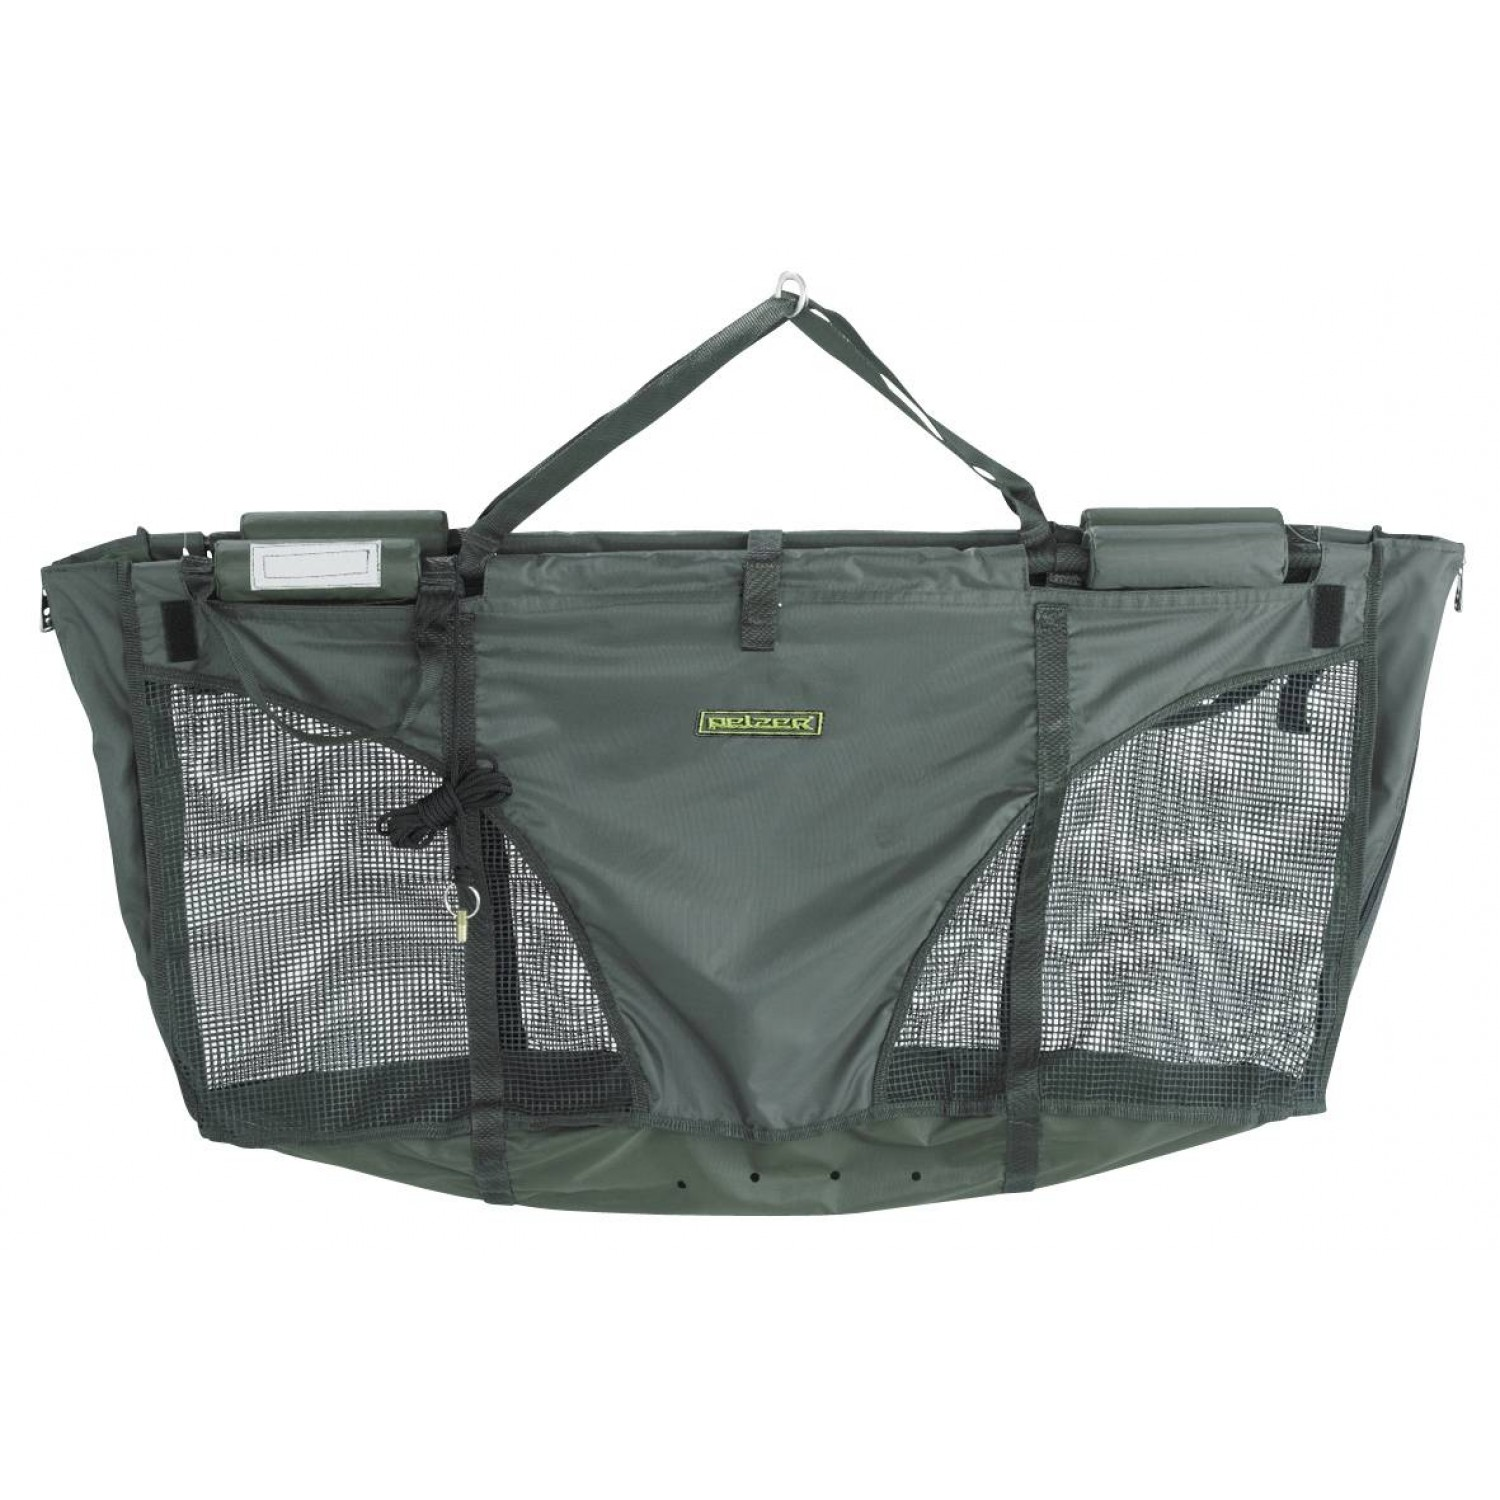 Pelzer Executive Floating Weight Sling, 108 x 40cm